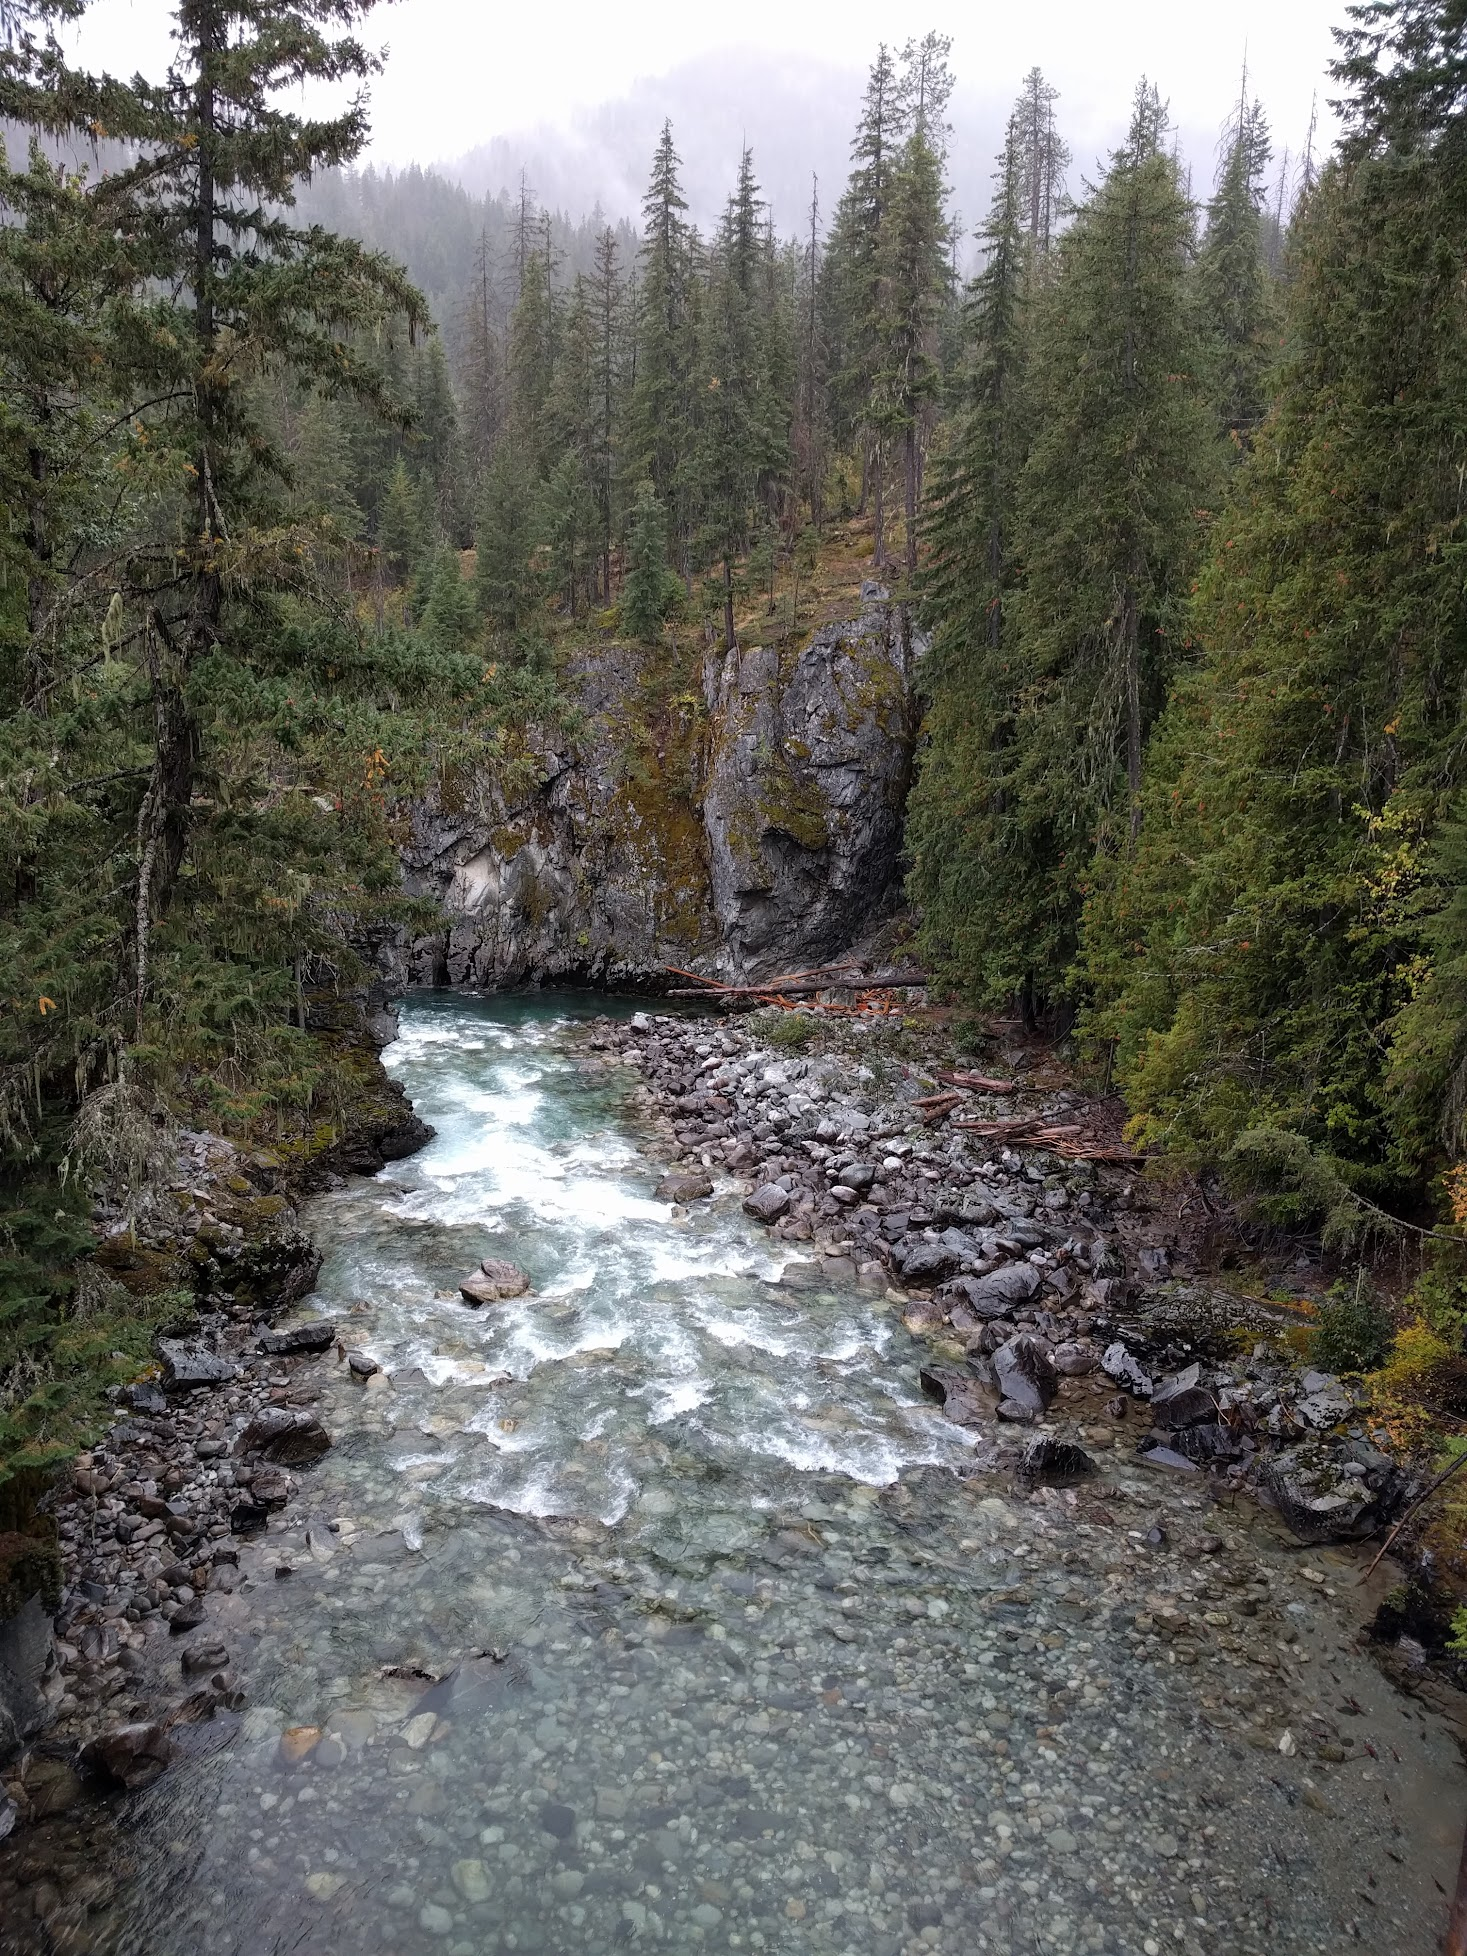 Stehekin River at High Bridge